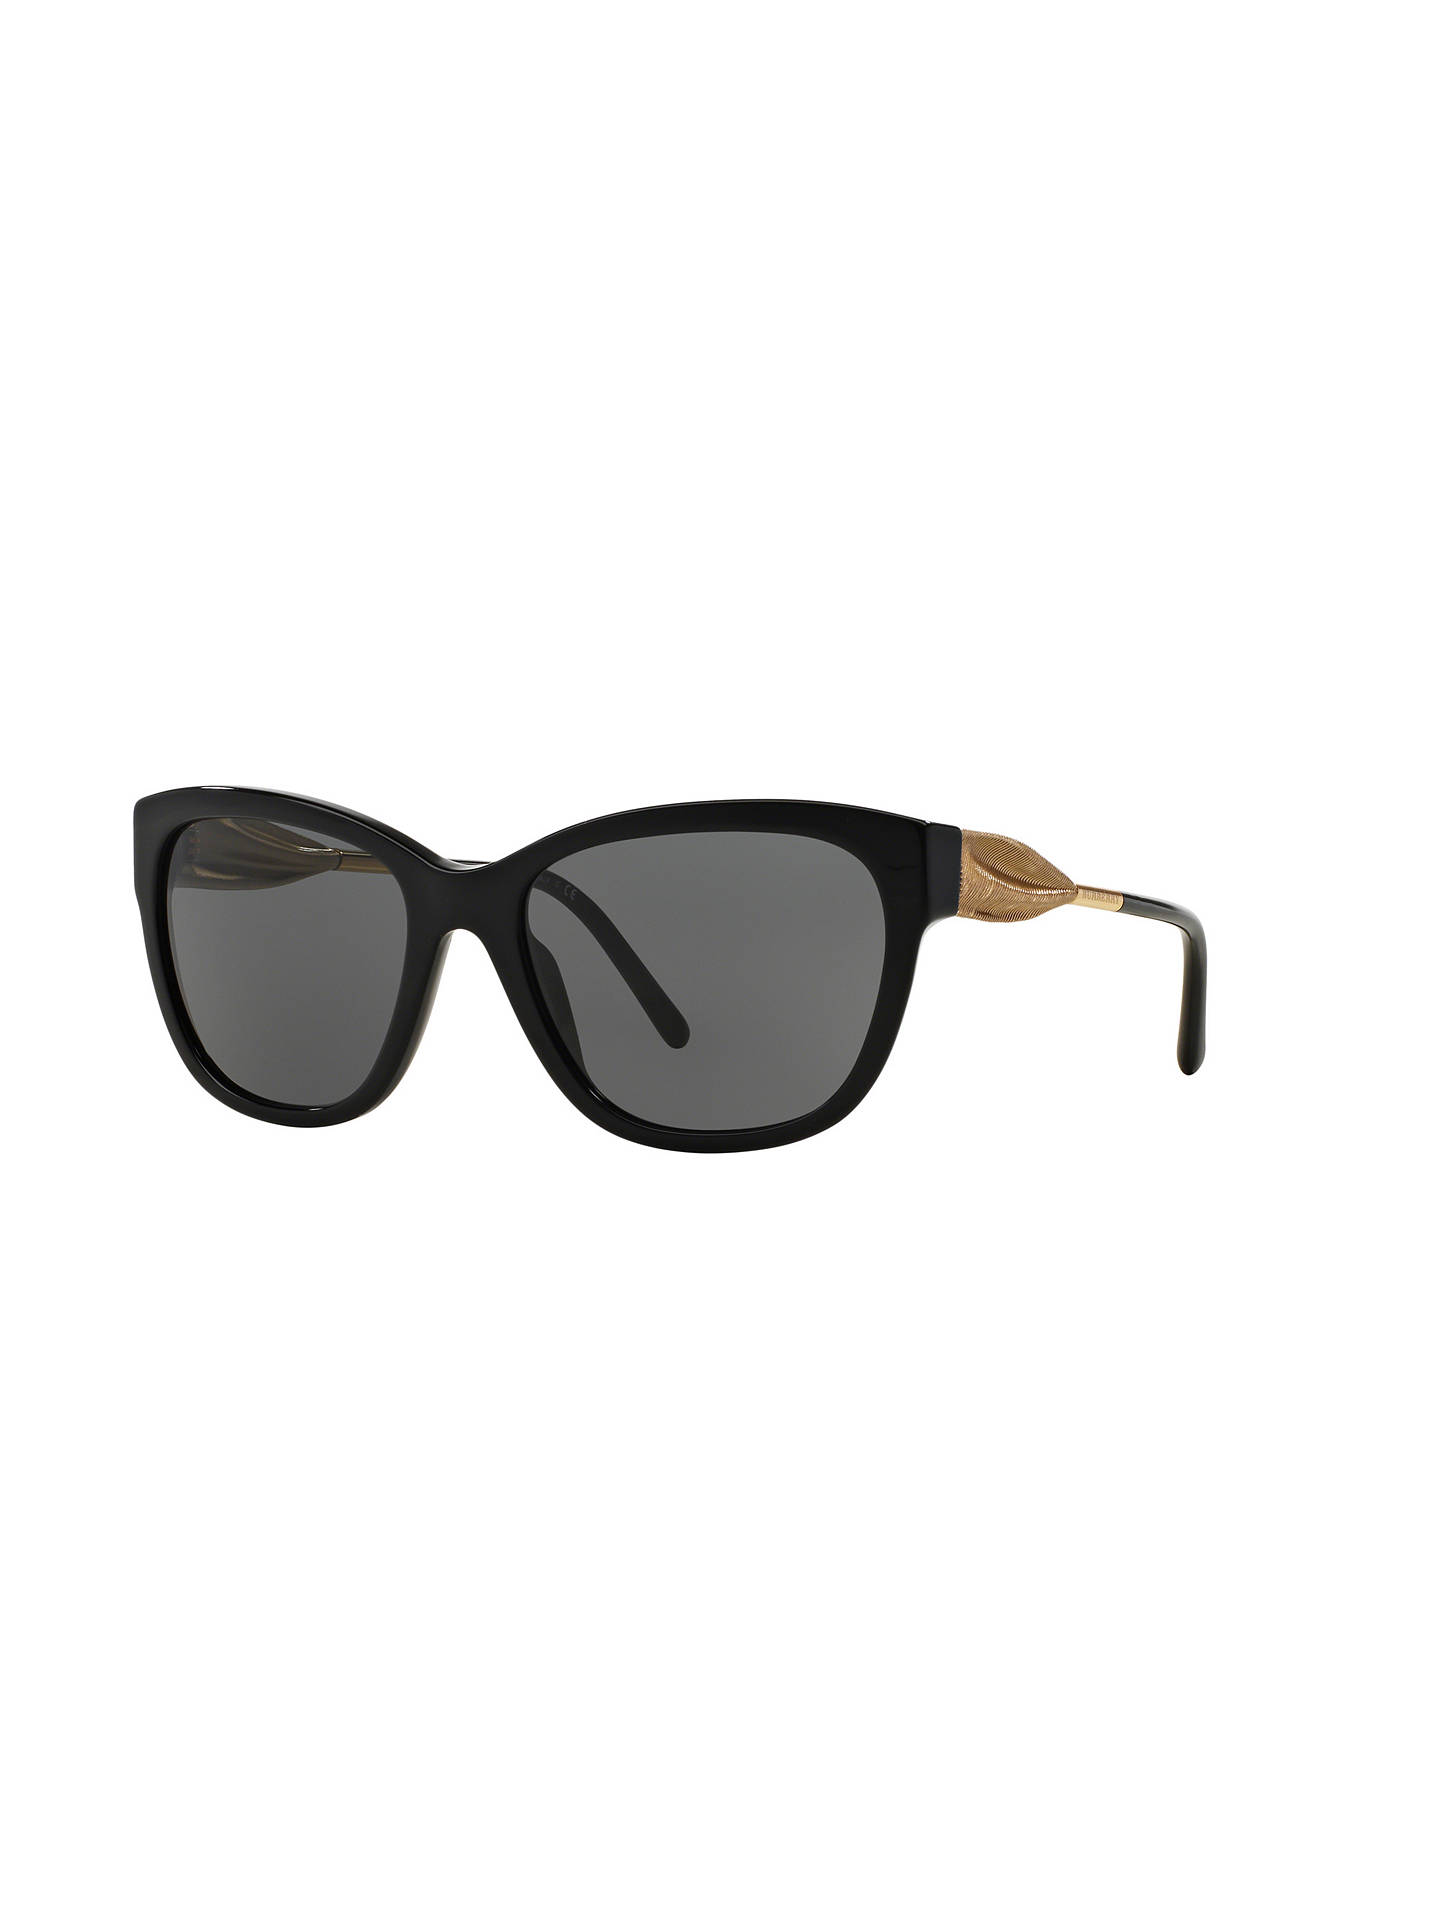 88bfa38f0d BuyBurberry BE4203 Square Sunglasses